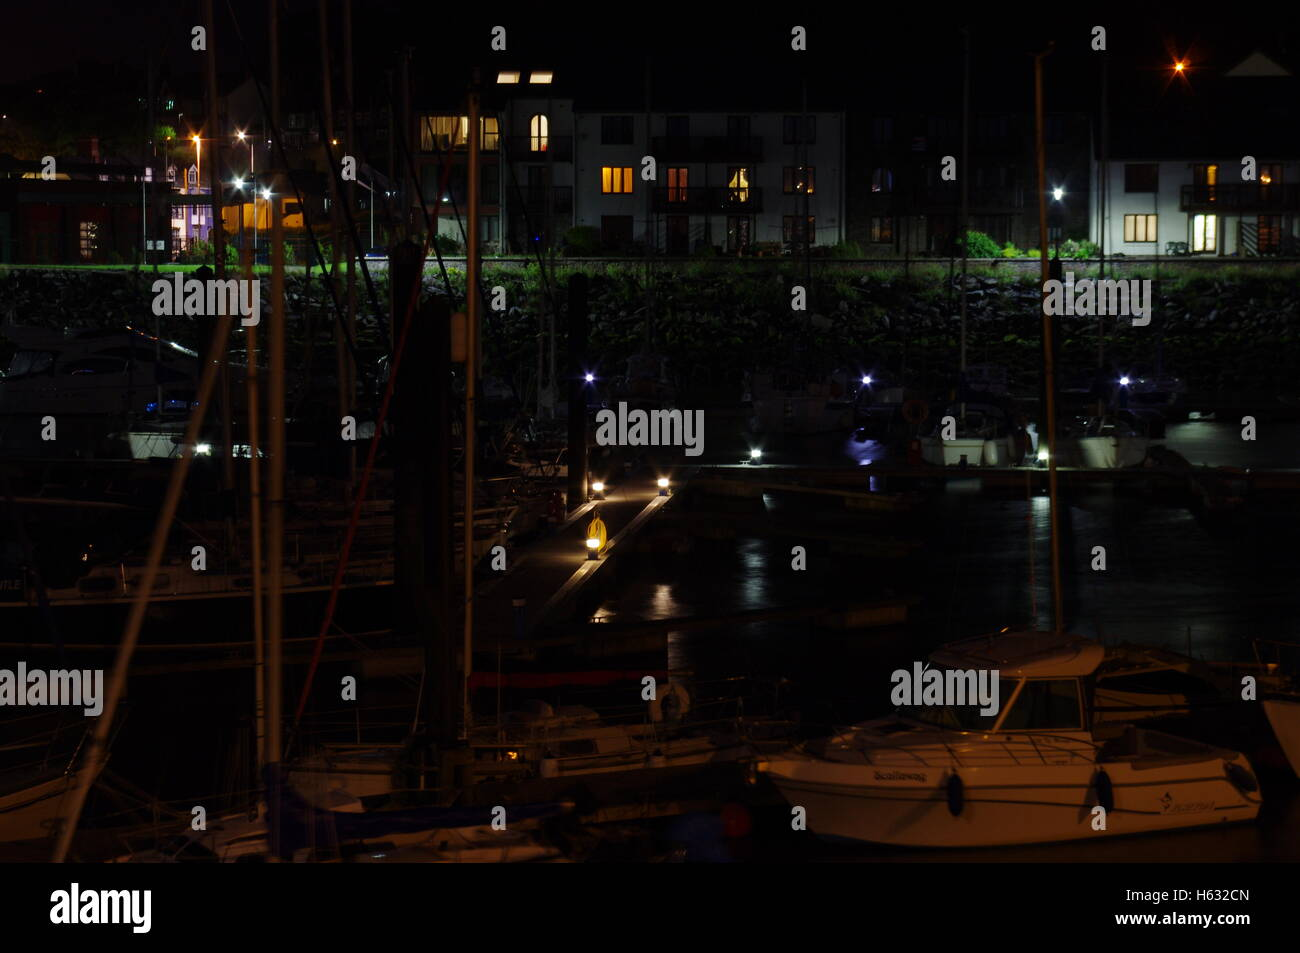 View overlooking Aberystwyth Harbour / Marina at night facing towards Y Lanfa Trefechen, shot taken with long exposure. - Stock Image